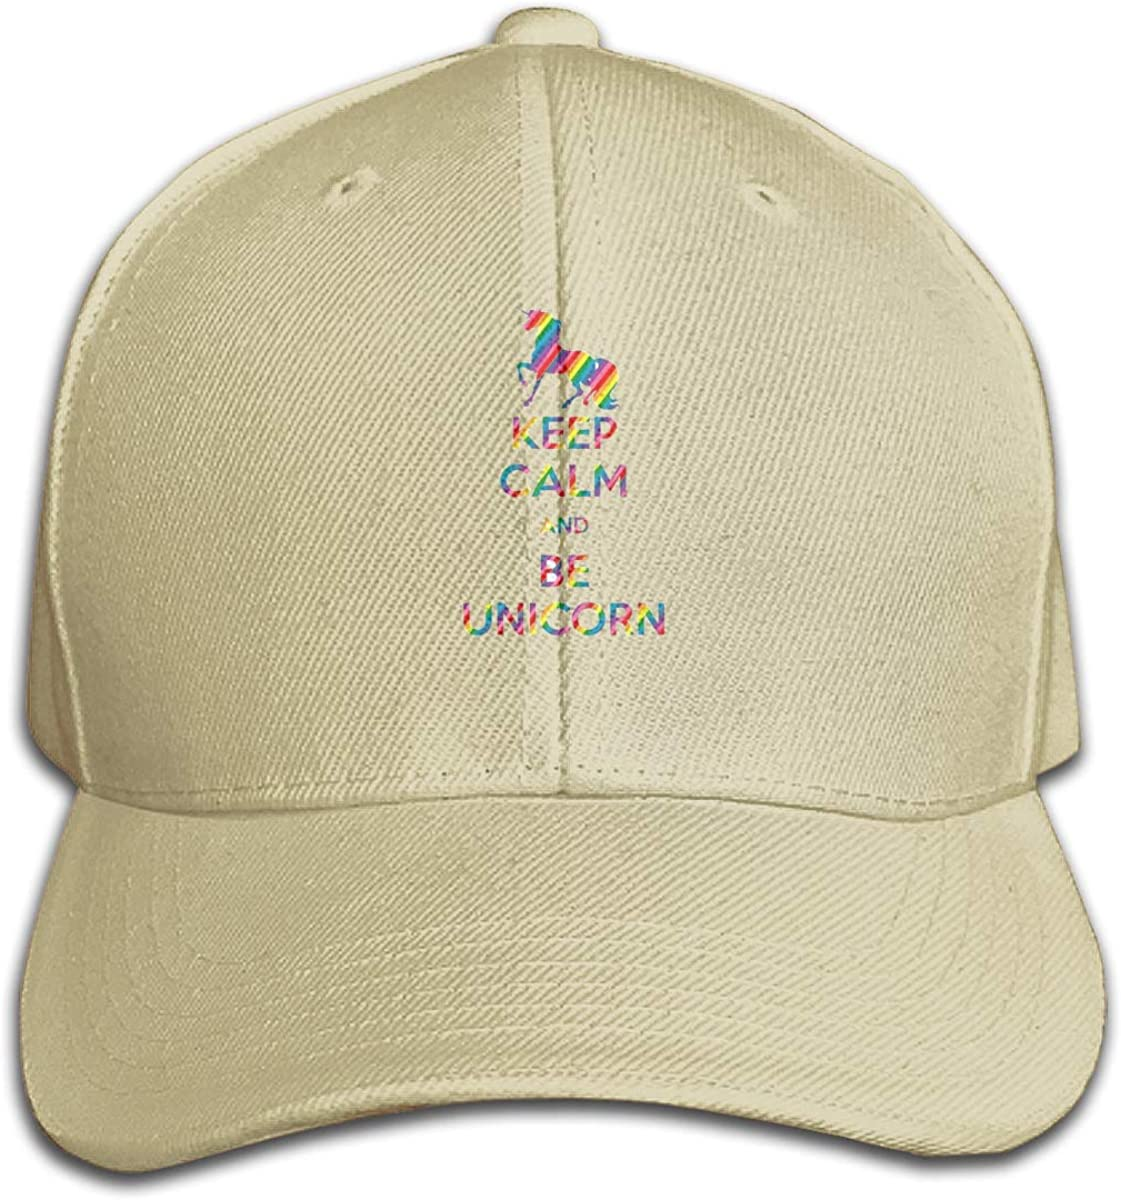 Keep Calm and Be Unicom Classic Adjustable Cotton Baseball Caps Trucker Driver Hat Outdoor Cap Natural